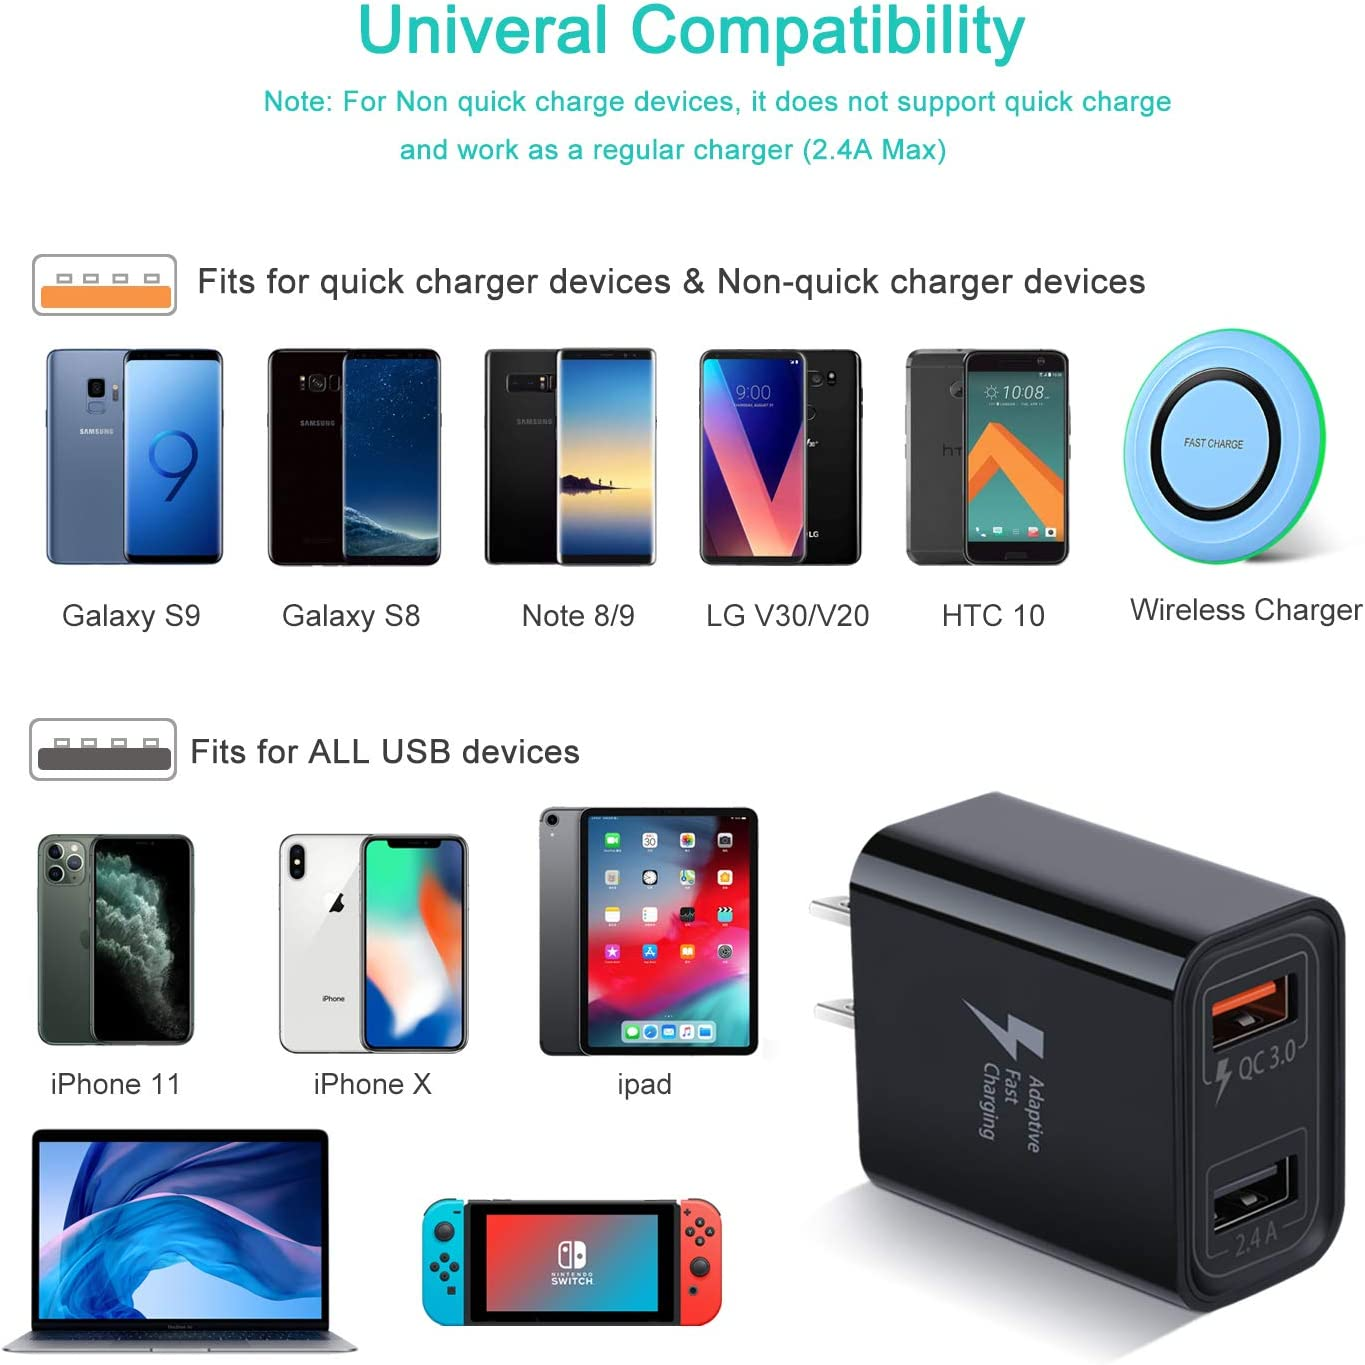 Galaxy S10 S9 S8 Note 8 9 Compatible iPhone 11//Xs MAX//XR//XS//X//8 Besgoods 4-Pack 30W Dual USB Wall Charger QC 3.0 Fast Charger Adapter Quick Charge 3.0 Wall Charger HTC LG QC3.0+2.4A iPad